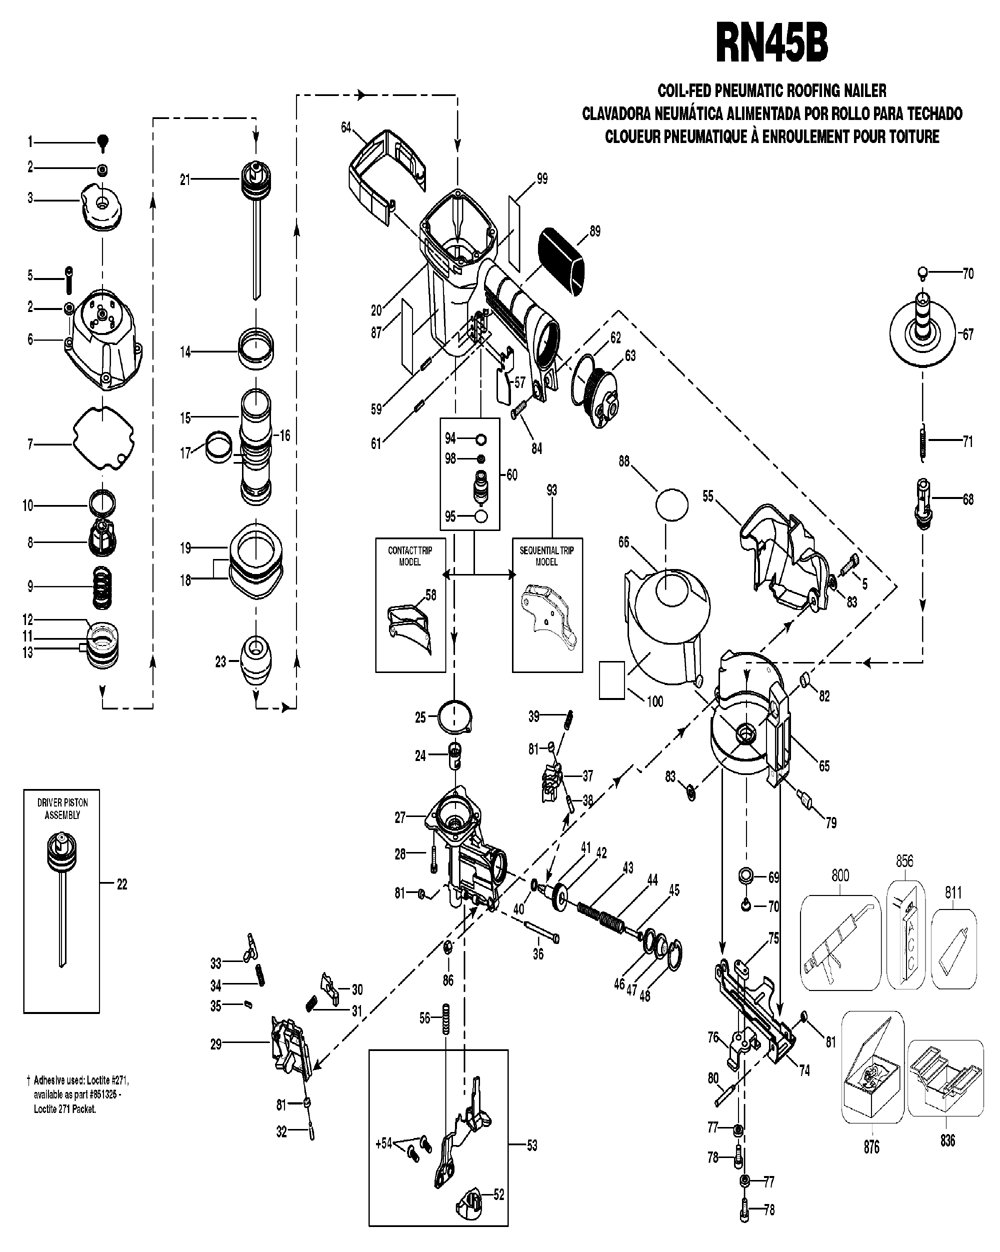 Bostitch Rn45b Parts List